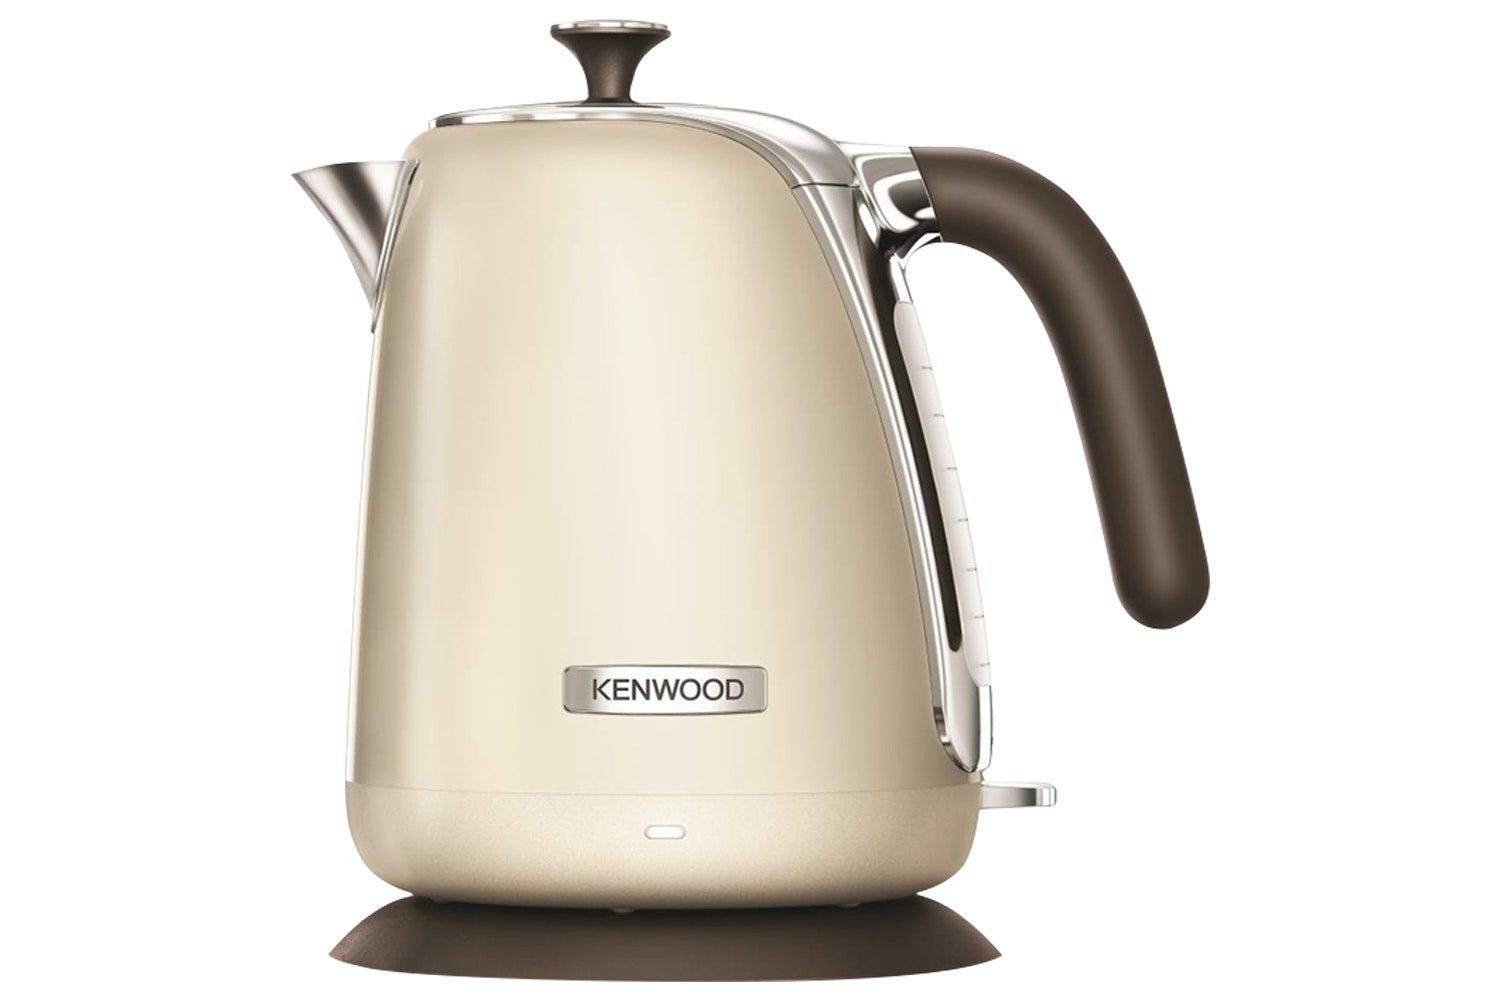 Kenwood 1.7L Turbo Kettle | ZJM300CR | Cream